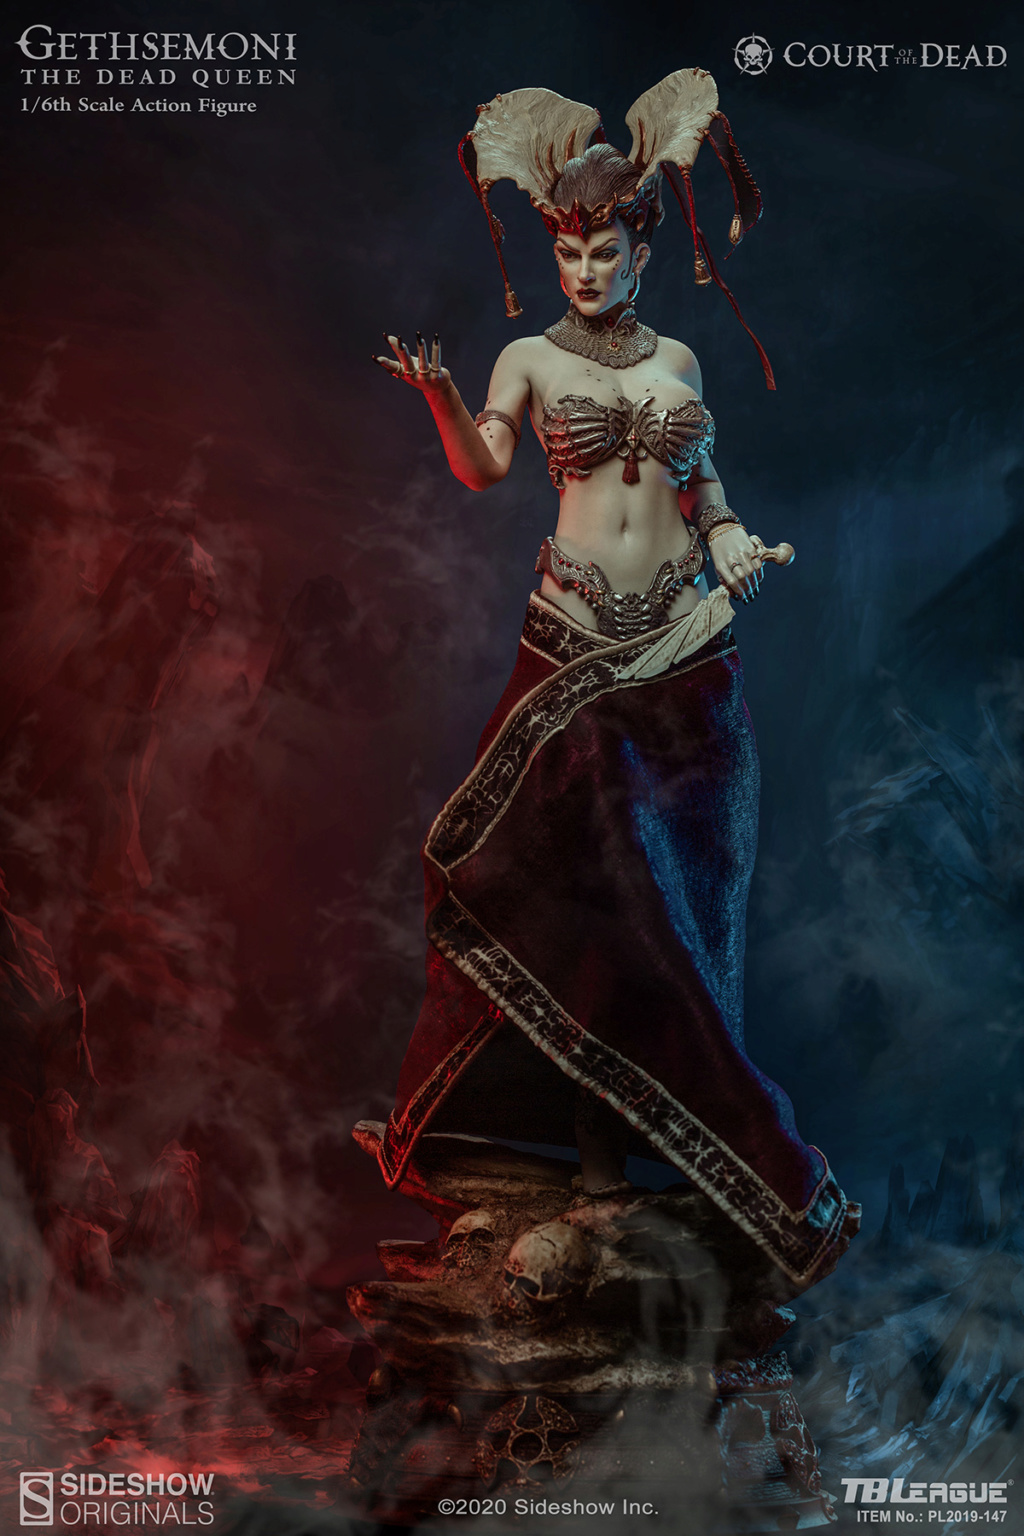 sideshow - NEW PRODUCT: Tbleague x SIDESHOW New: 1/6 Court of the Dead: Gethsemoni The Dead Queen action figure (PL2019-147) 16522110